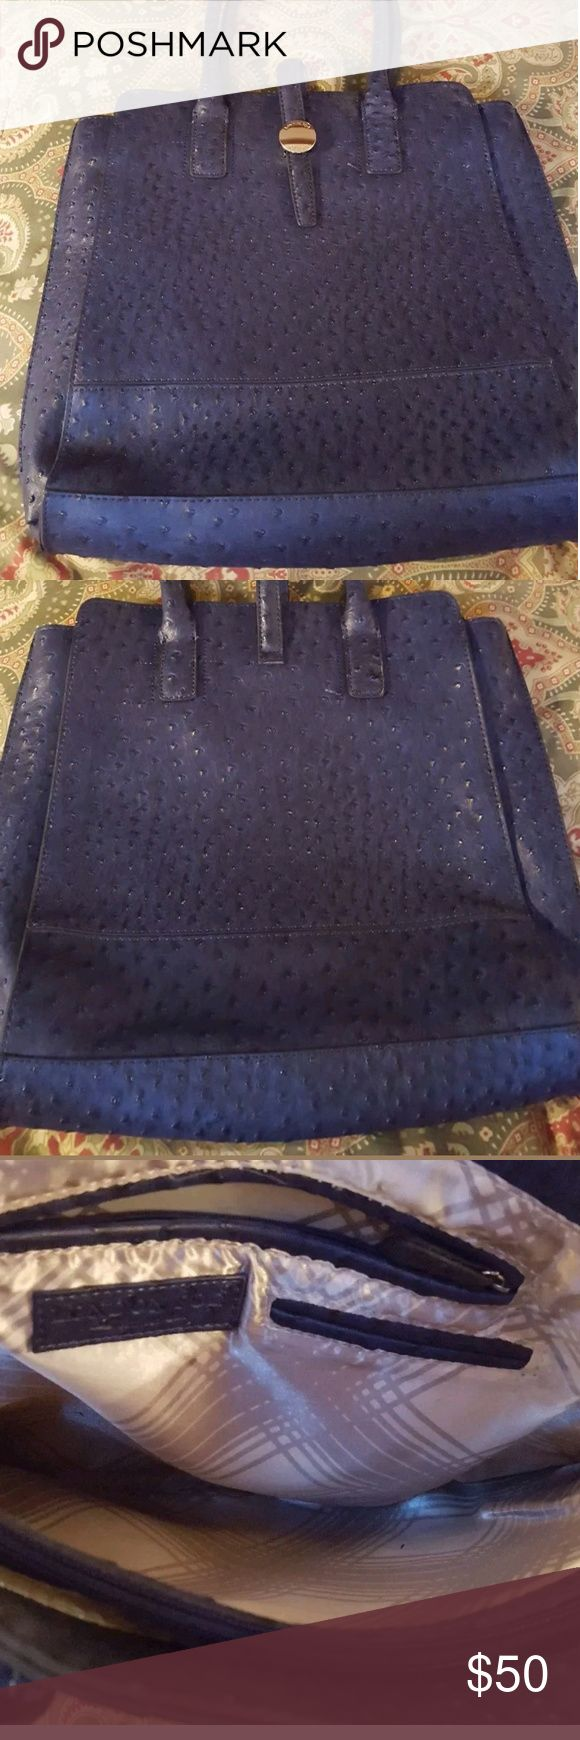 """London Fog blue shoulder bag purse tote Bag is in excellent condition.  15.5 length,  8"""" strap drop, 13"""" depth,  13"""" height.      Bag opens to three compartments. Front had two slip pockets. Middle is a slim zip compartment. Back has one larger and one small slip pocket. Key holder included. Back is located in a smoke-free home. London Fog Bags Totes"""